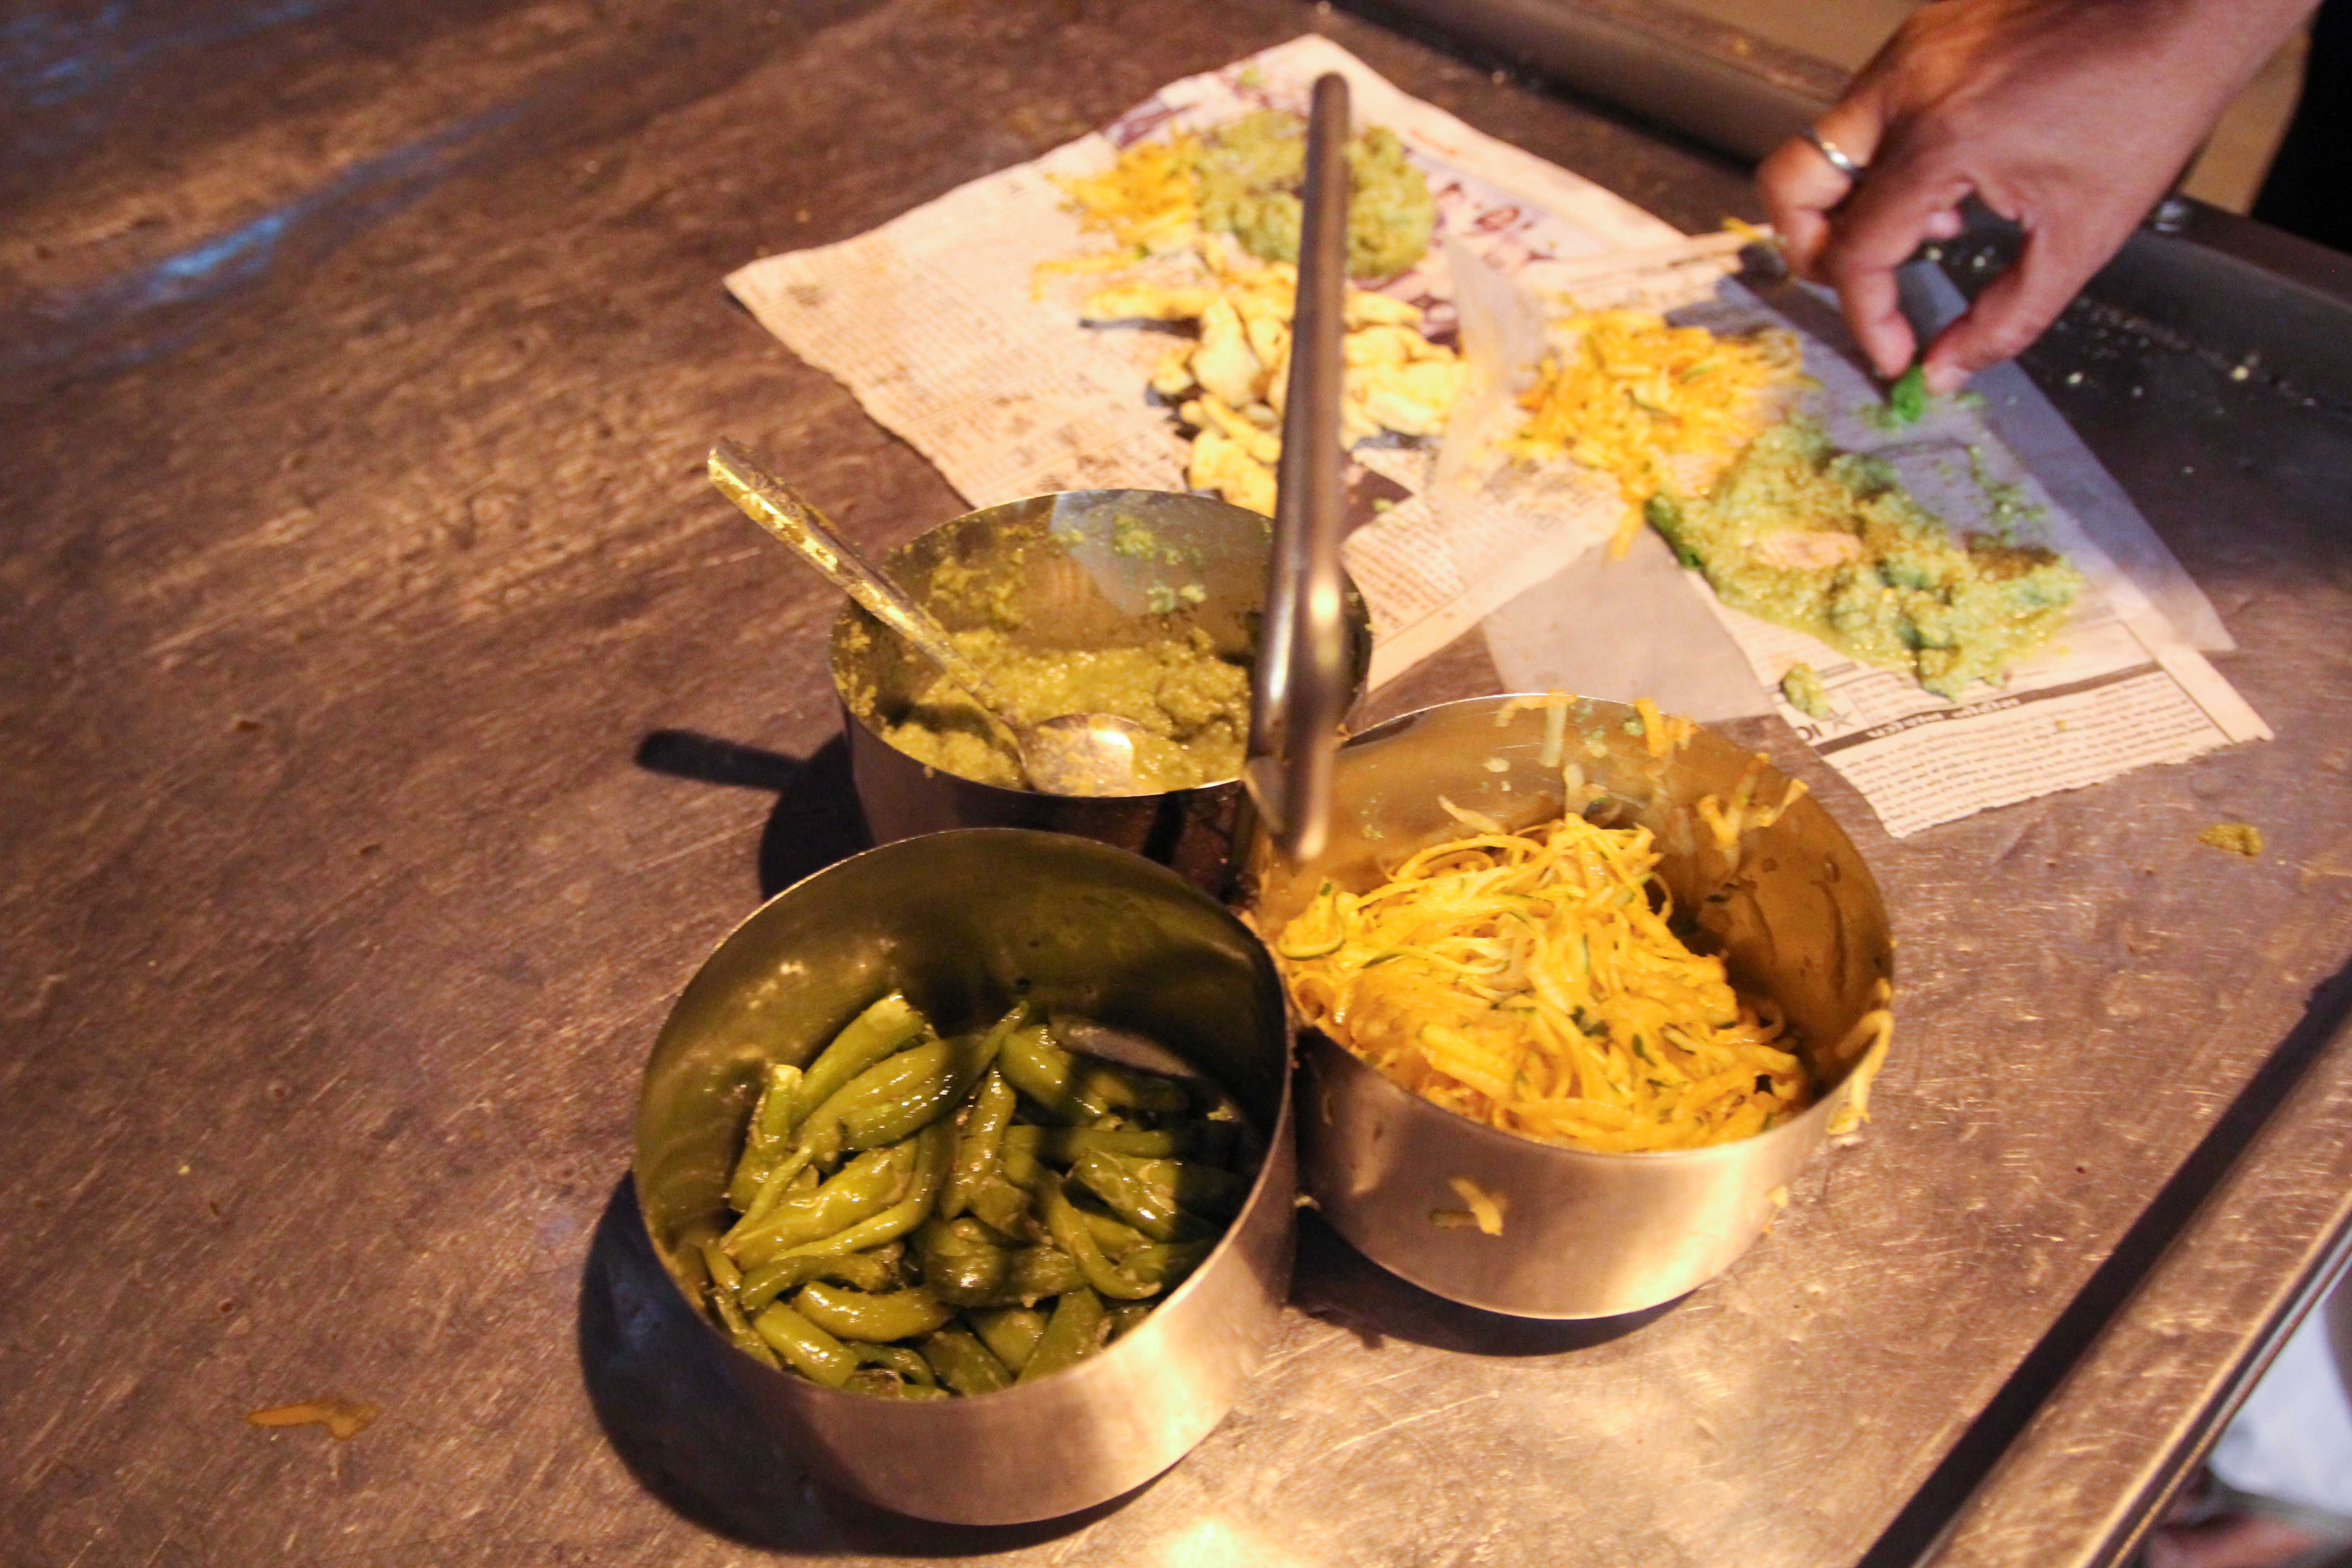 Gathiya, a typical deep-fried Gujarati snack, served with chilis, mint chutney and raw papaya slaw.